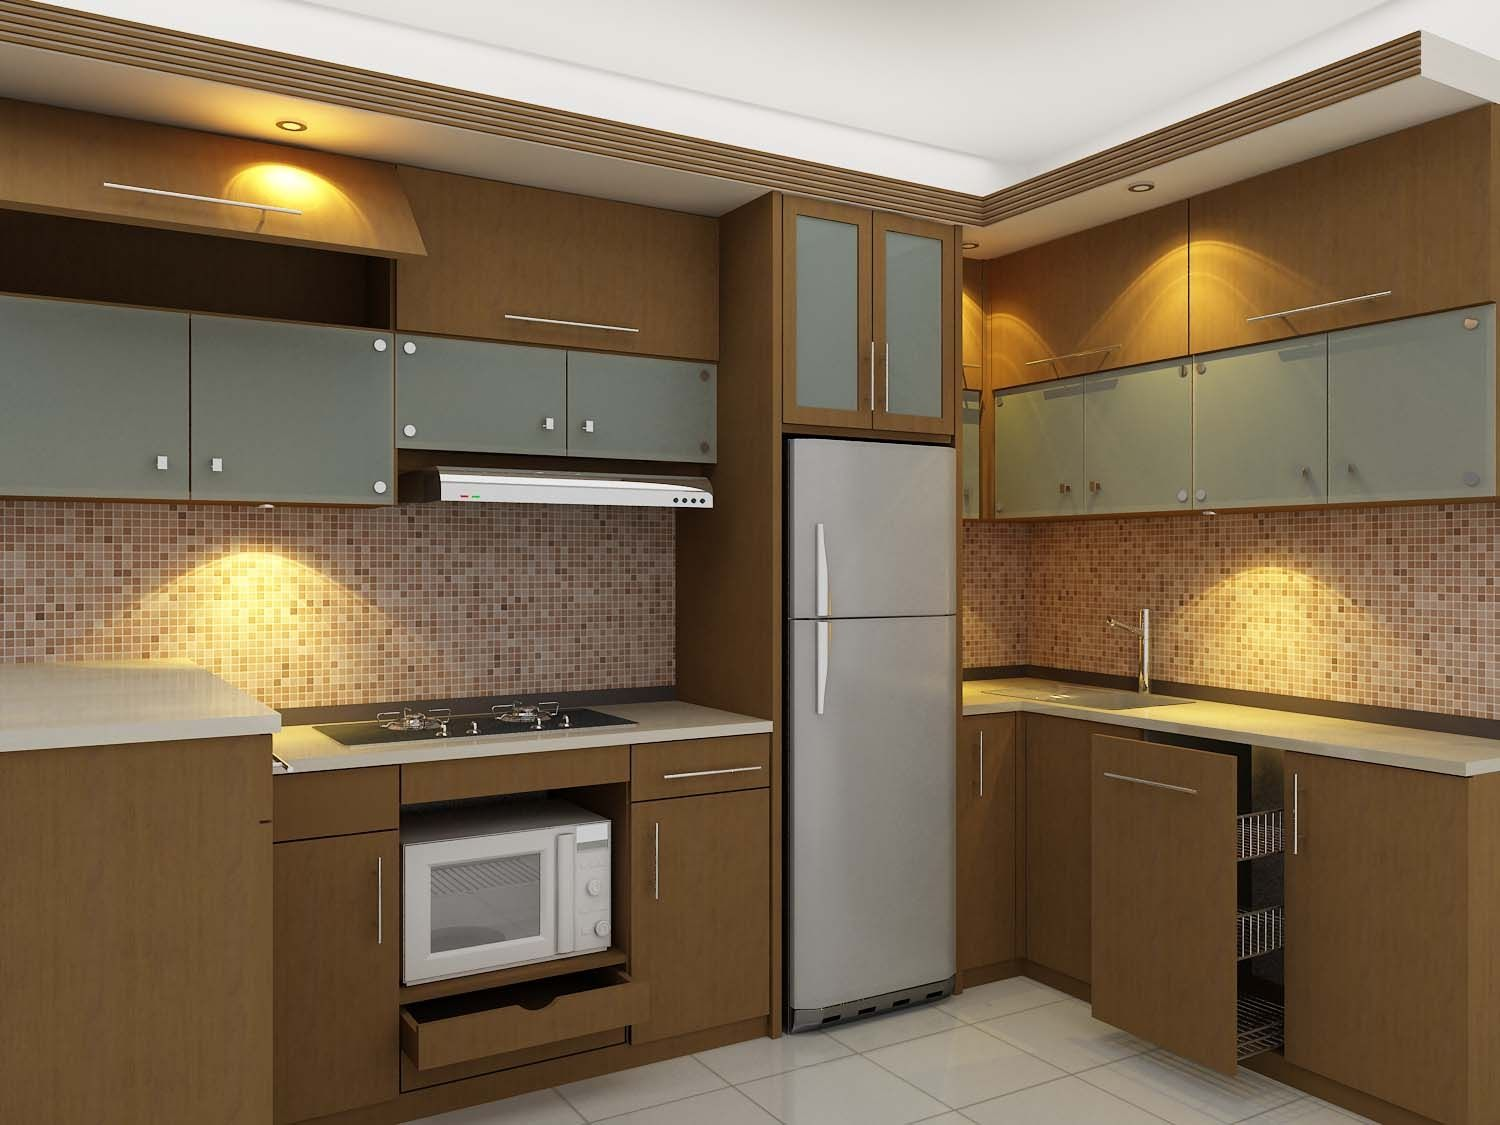 Design Kitchen Set Desain Kitchen Set Minimalis  Rumah  Pinterest  Kitchen Sets